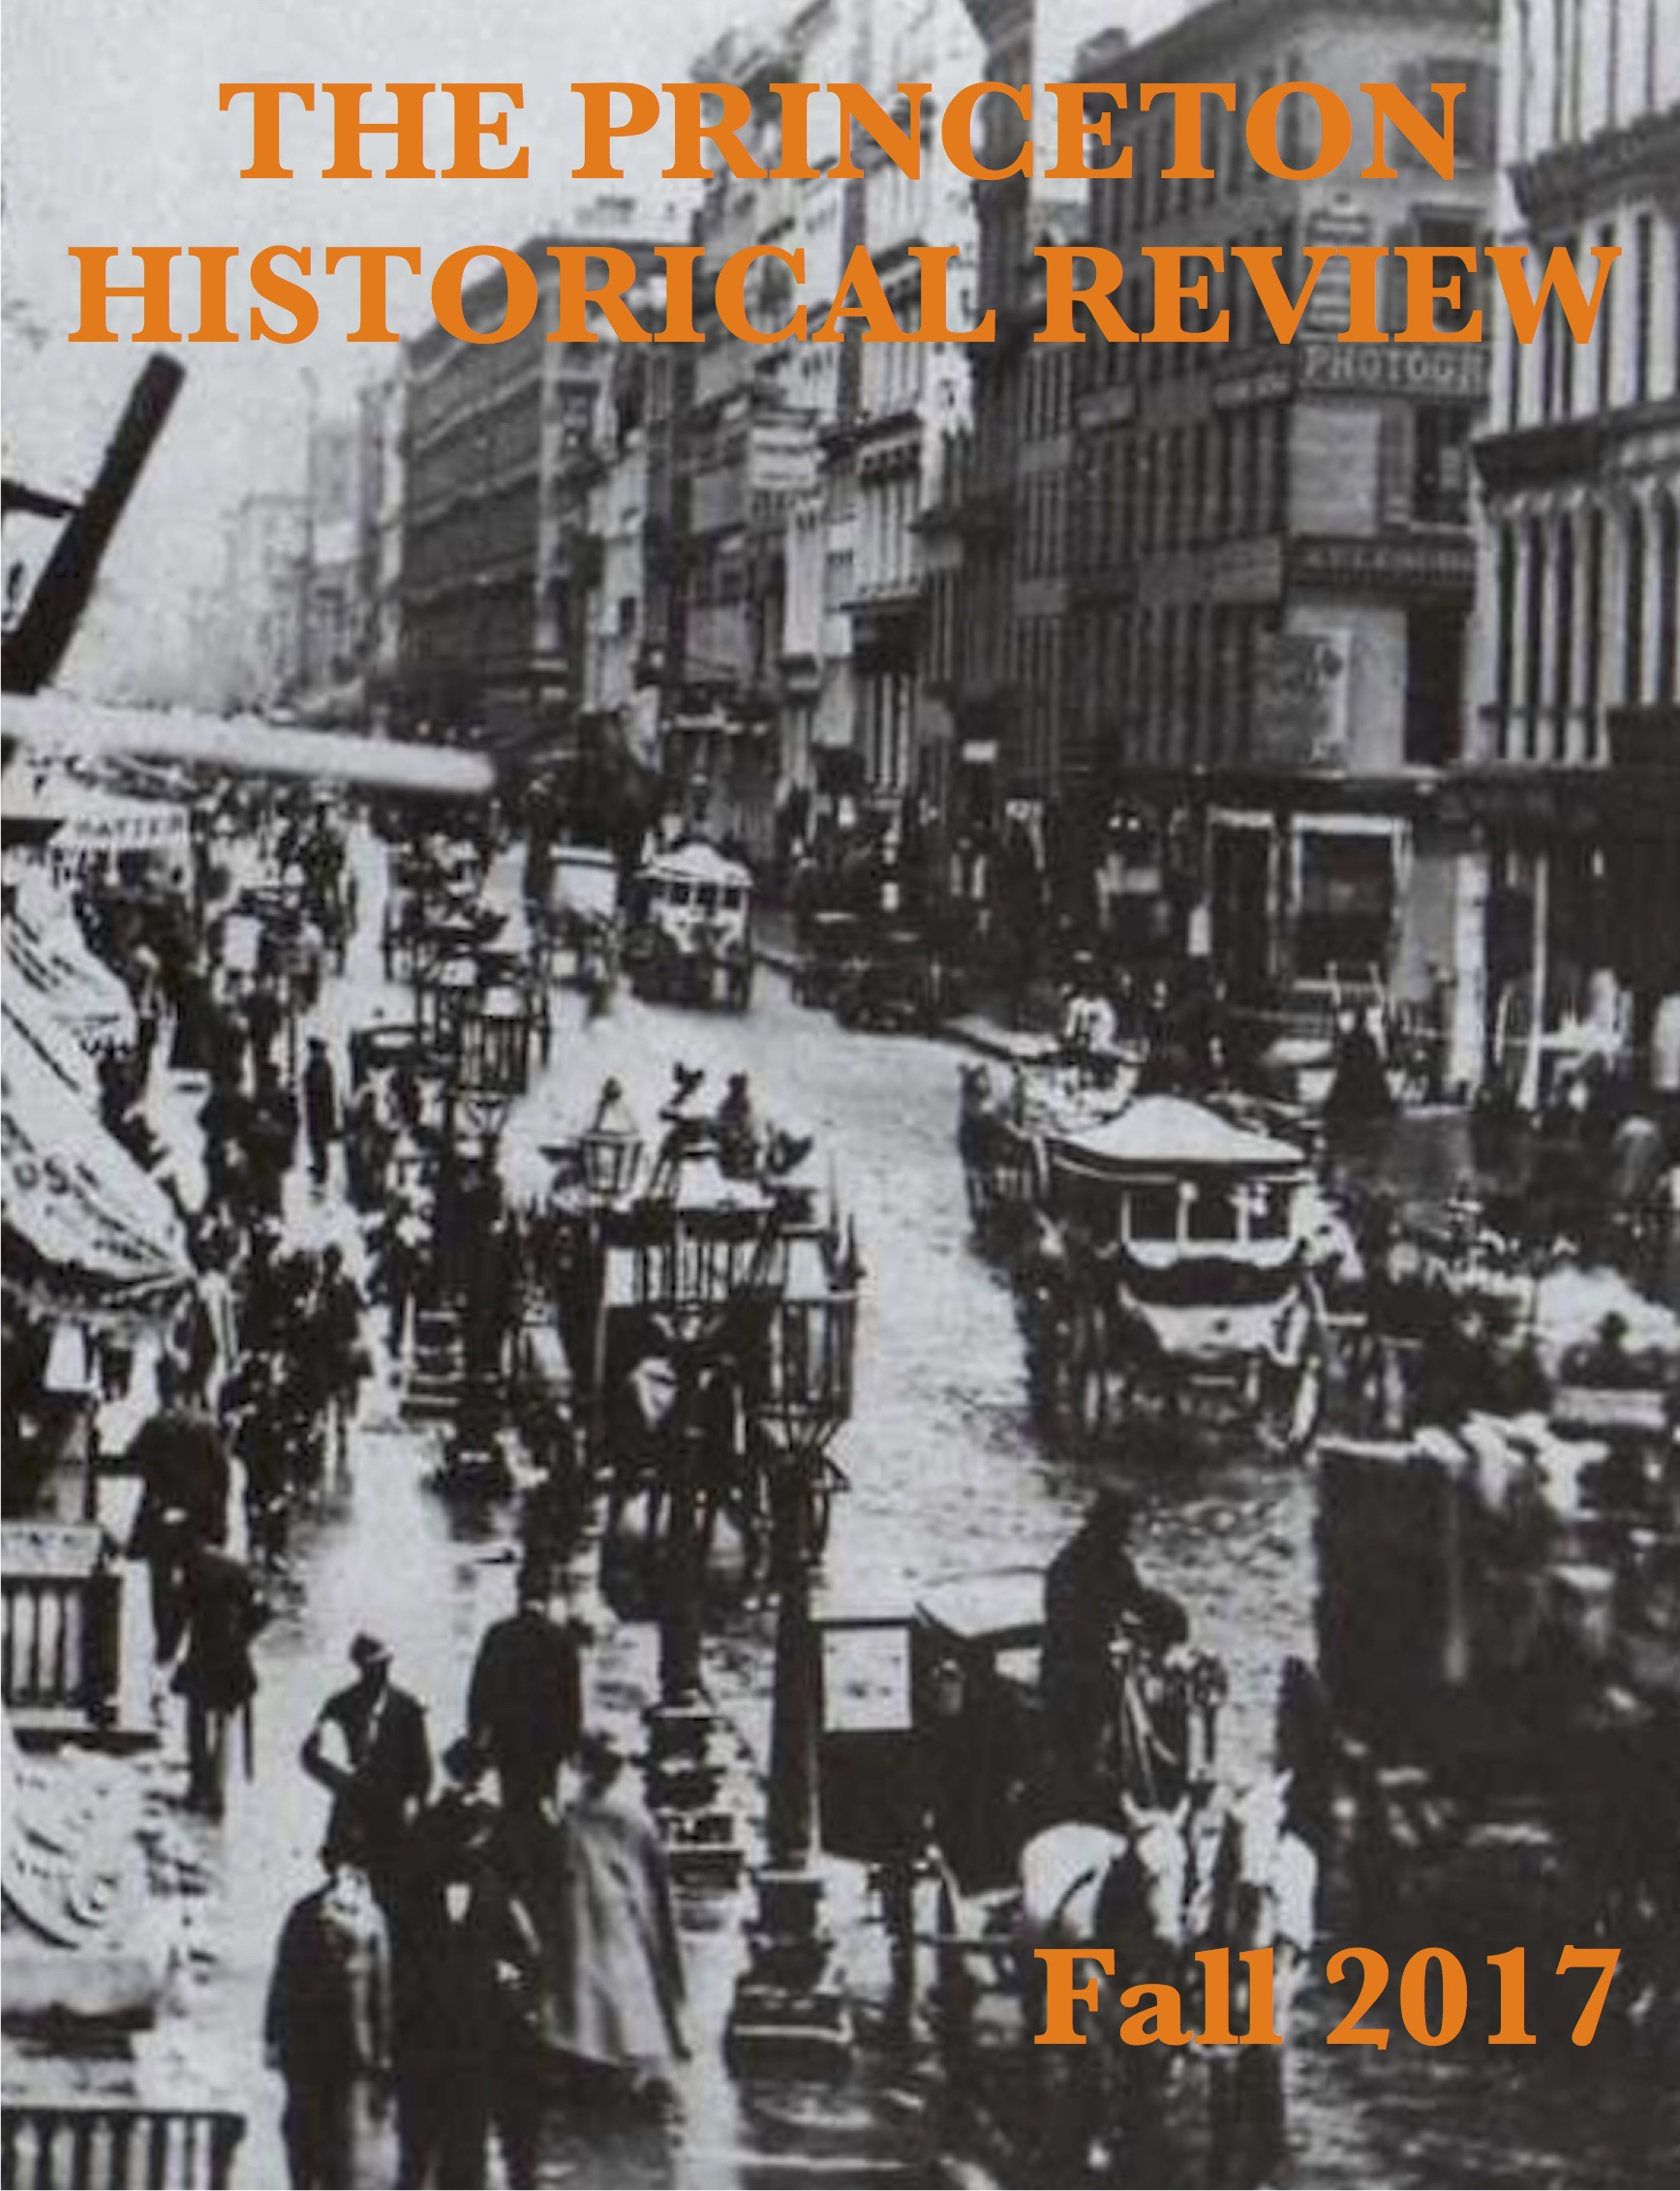 The Princeton Historical Review Fall 2017